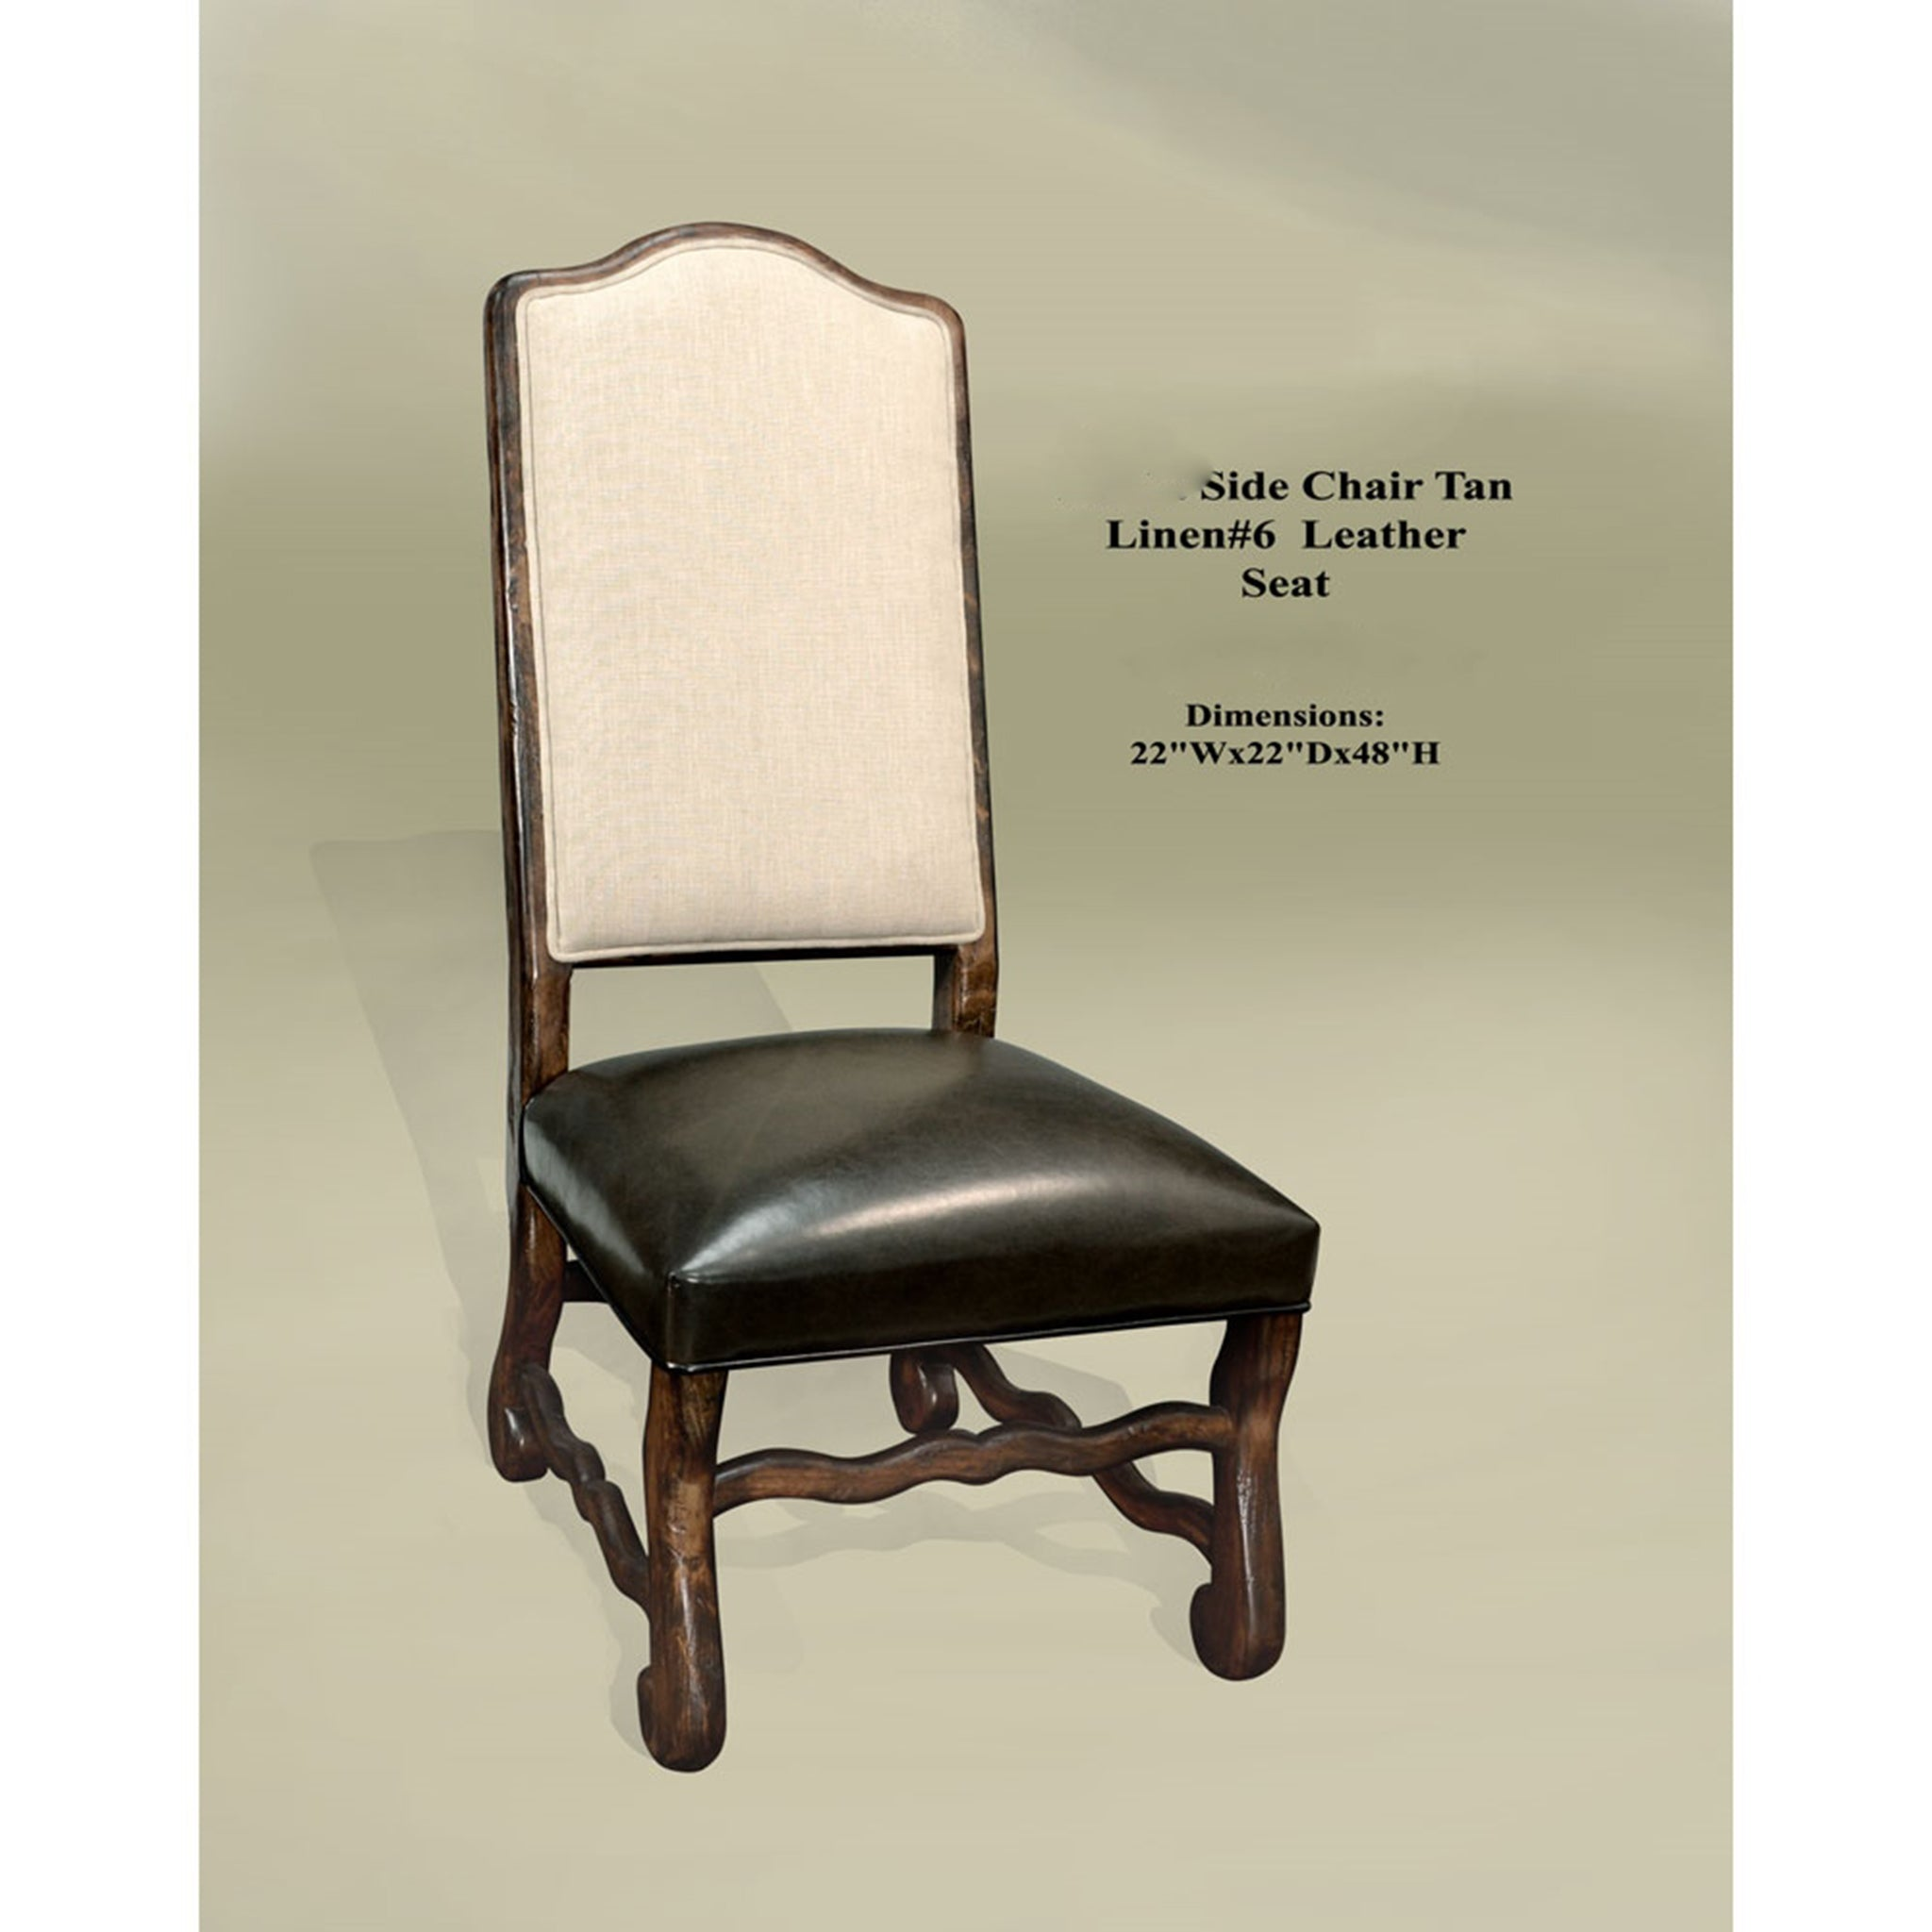 Tuscan Linen Sierra Side Chair Linen Upholstery Brown Leather Seat Set of 2 - Furniture on Main